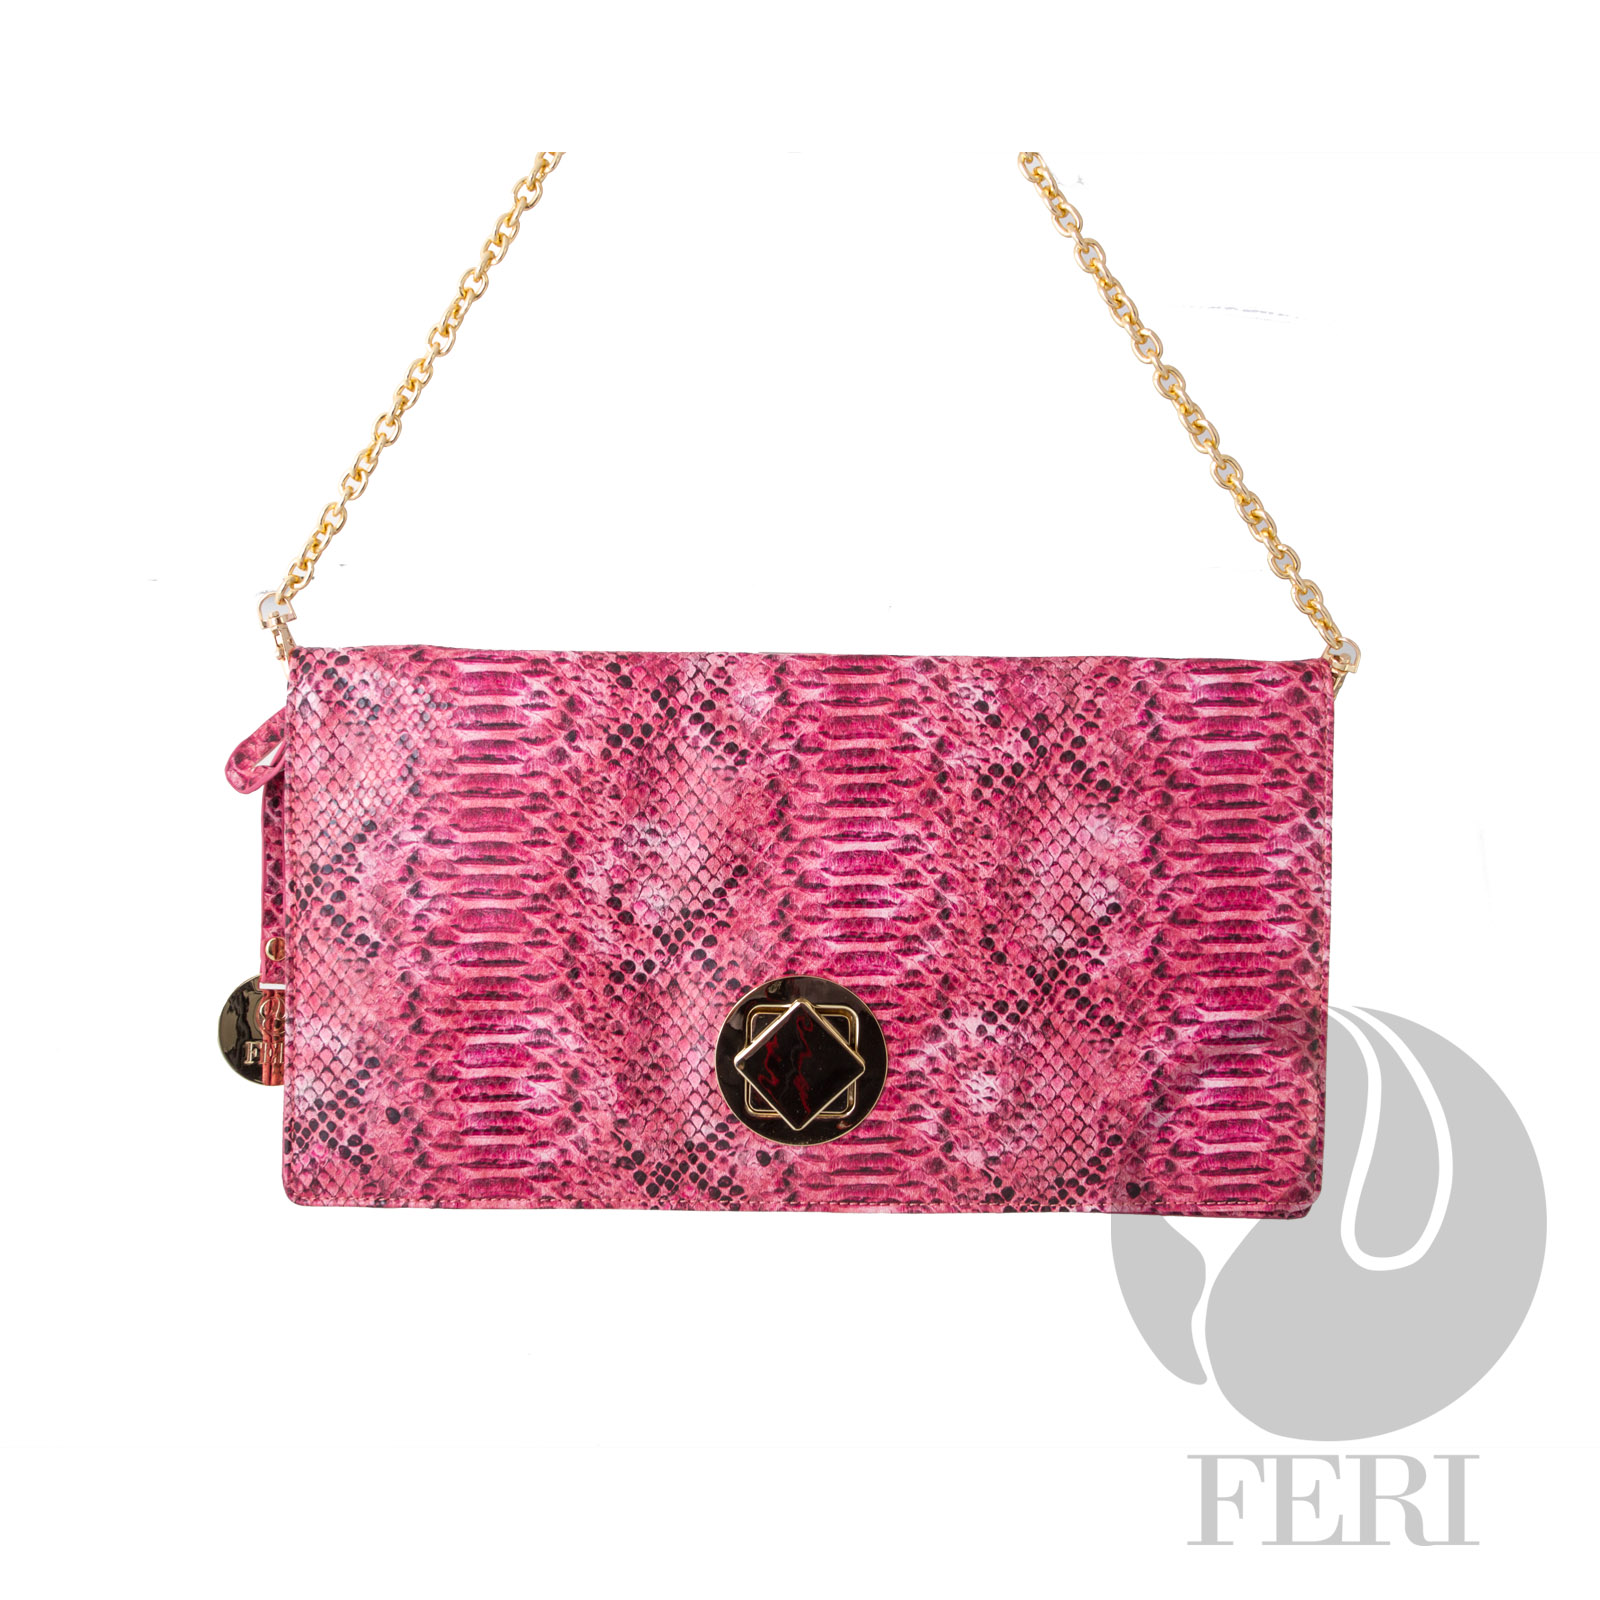 "- Faux leather envelope purse    - Snake skin print pattern   - Gold toned hardware and flap closure   - Removable chain strap    - Custom FERI lining   - Dimension: 15.35"" x 8.27"" x 1.2"""